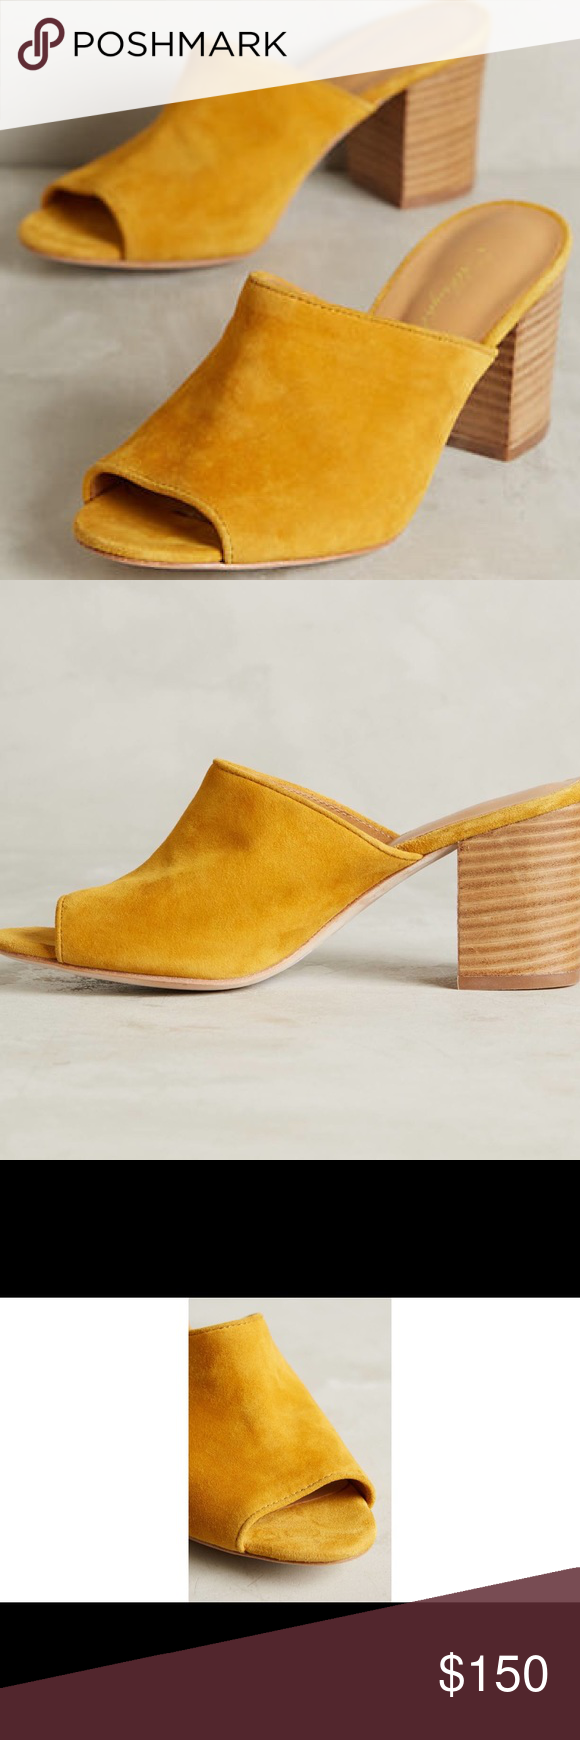 d86526267a855 Miss Albright Maroccana mules Suede upper, leather insoles, made in Spain,  3.25 inches heel.... mustard color very neutral... fits Usa size 7.5 to 8  ...